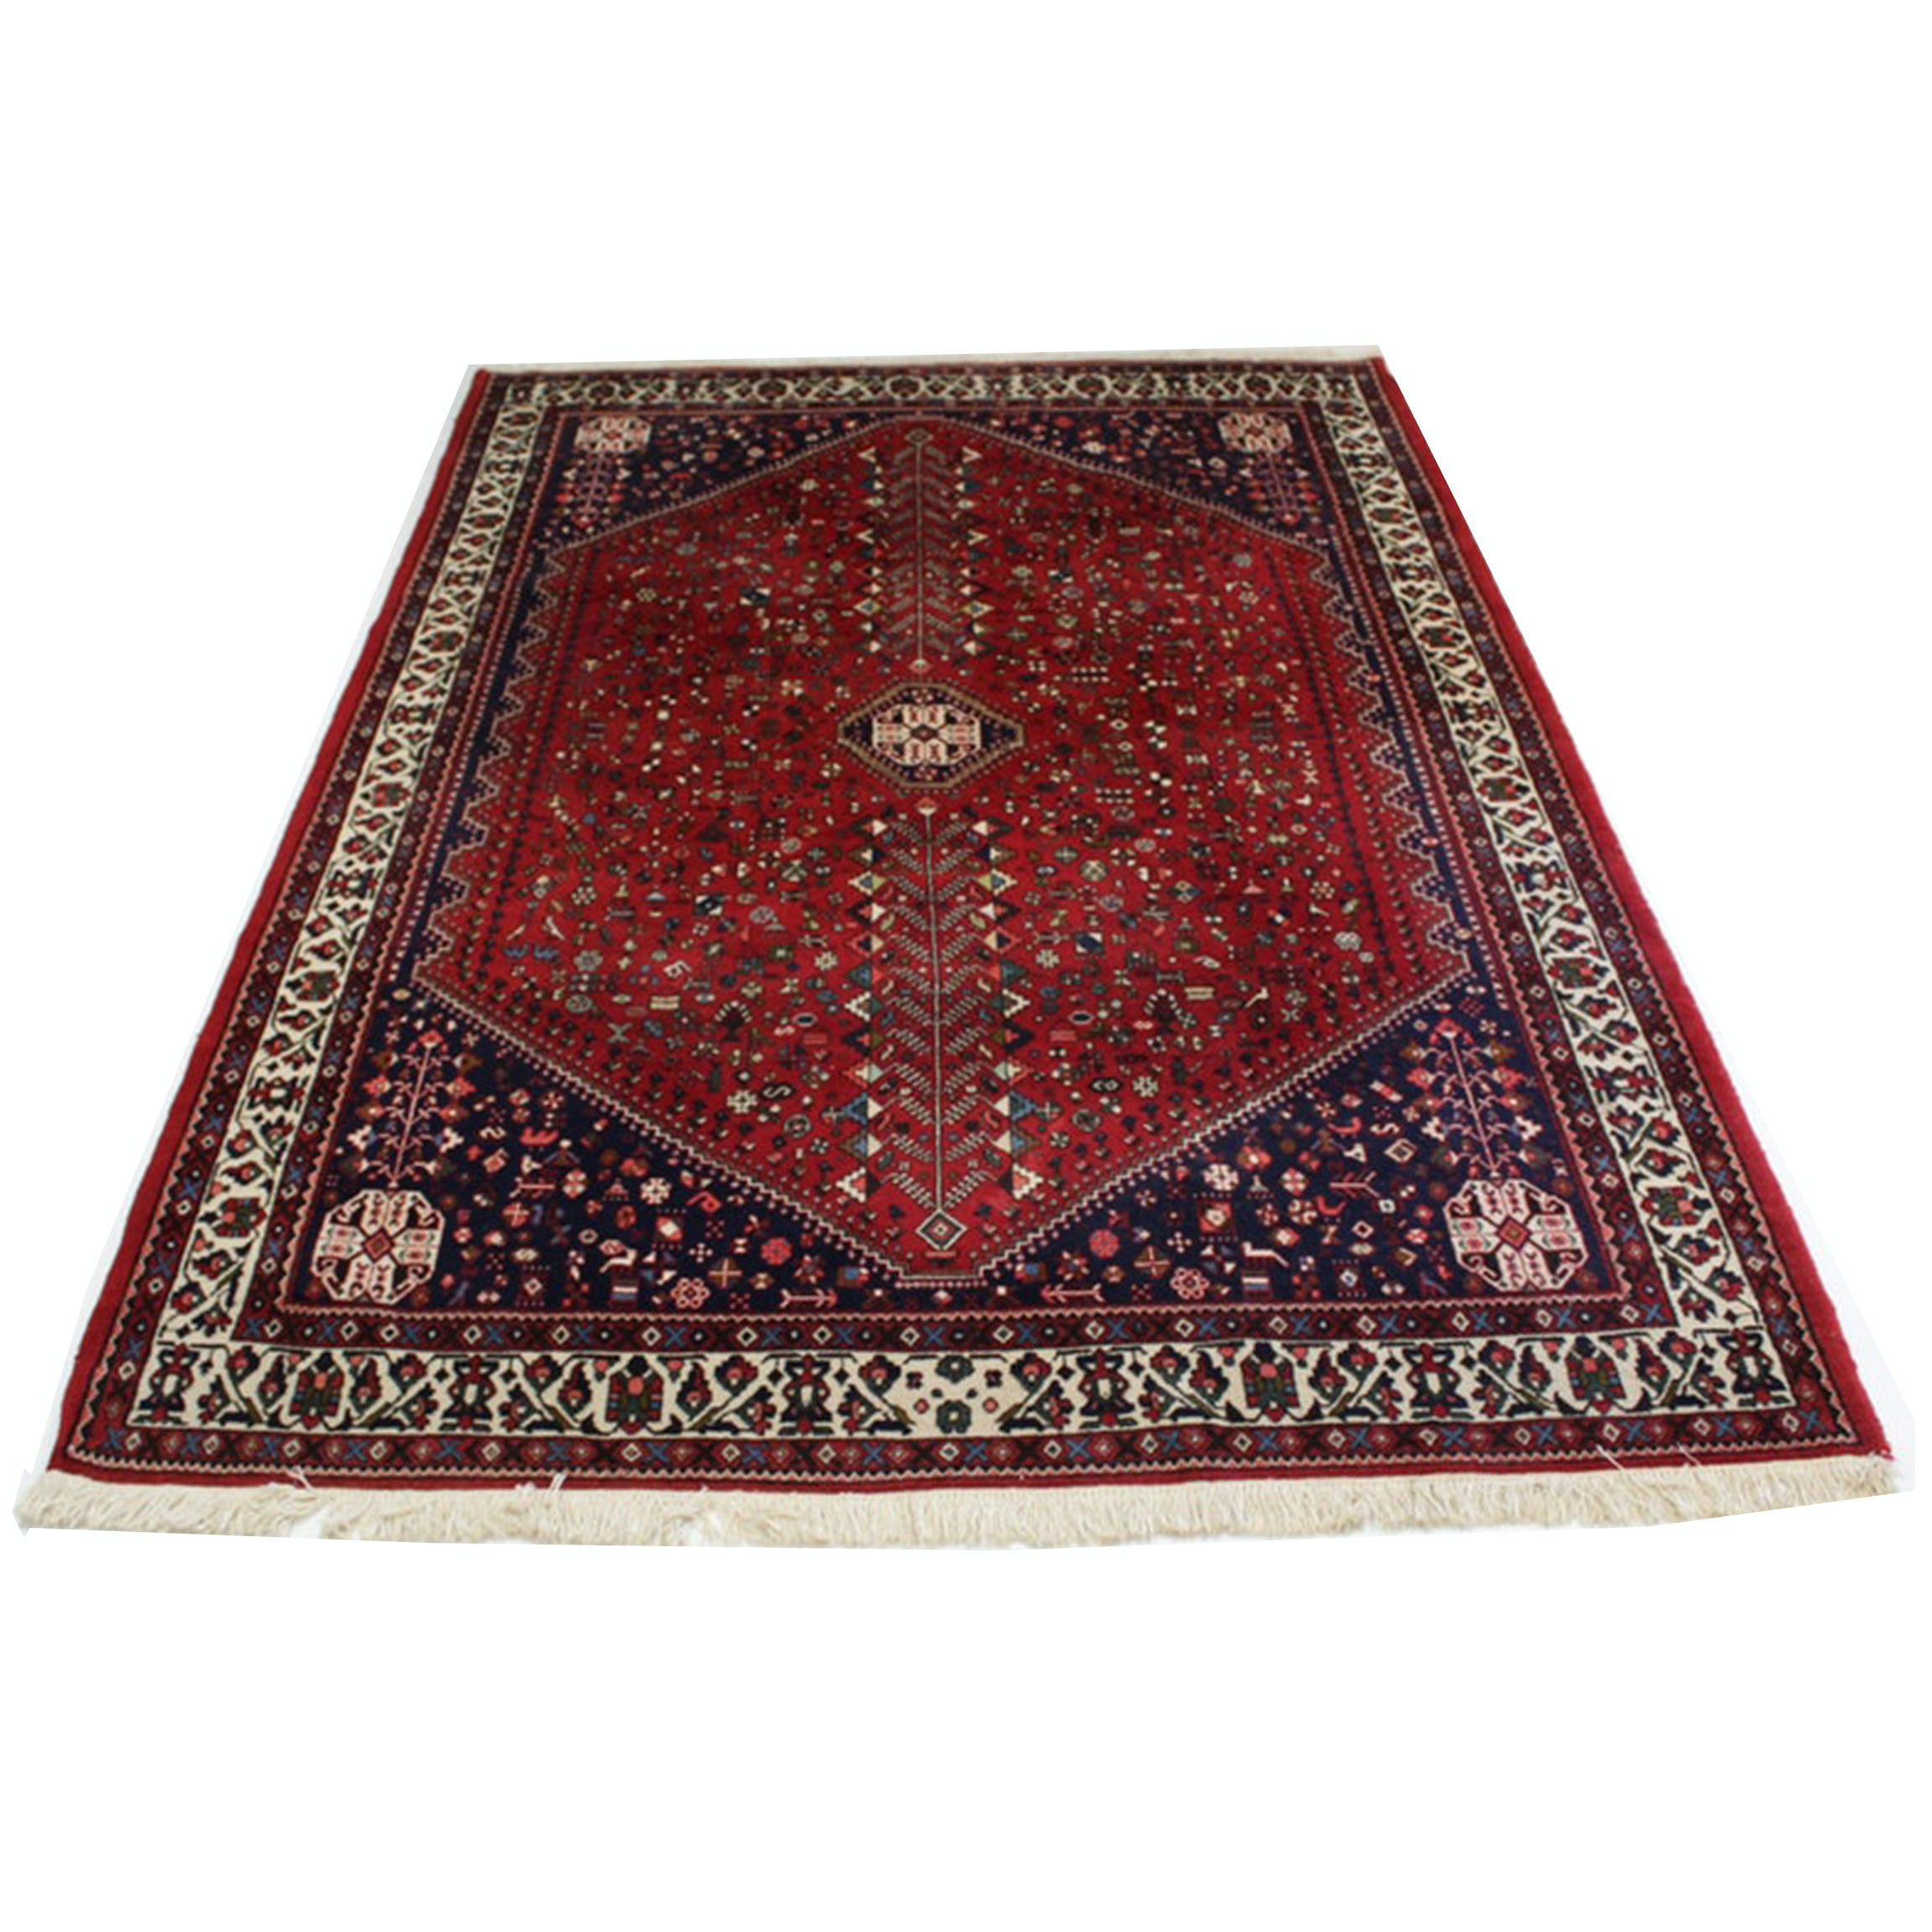 6'8 x 10' Circa 1940's Hand-Knotted Persian Abadeh Shiraz Rug